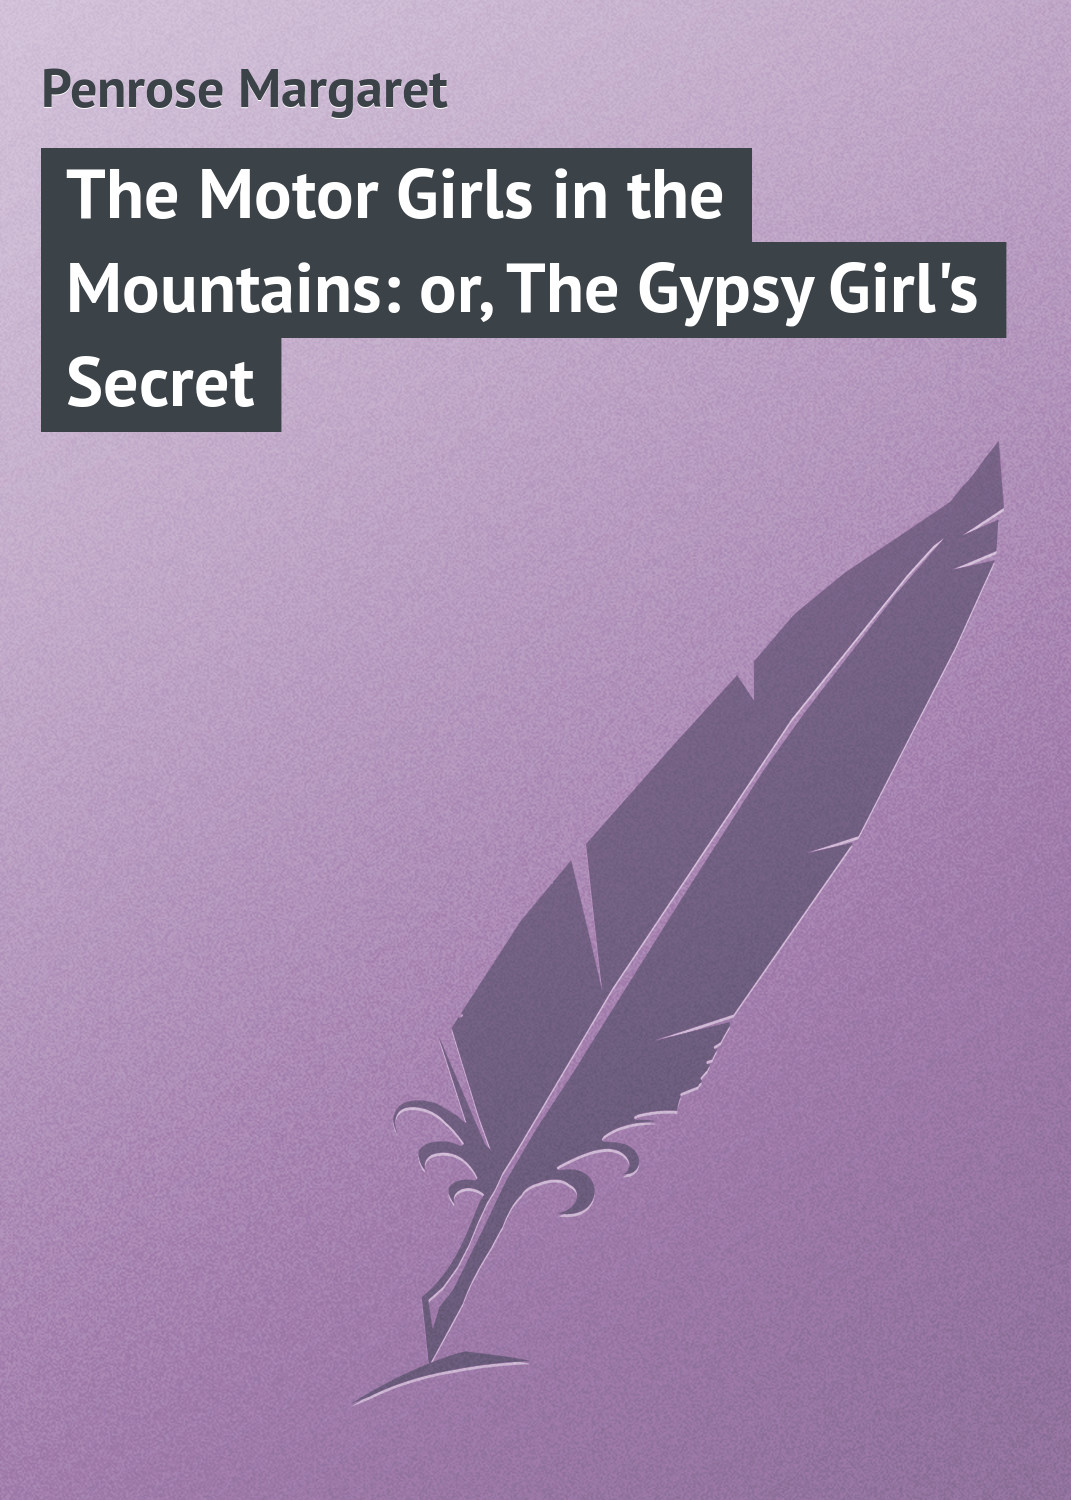 Penrose Margaret The Motor Girls in the Mountains: or, The Gypsy Girl's Secret chris helder the ultimate book of influence 10 tools of persuasion to connect communicate and win in business